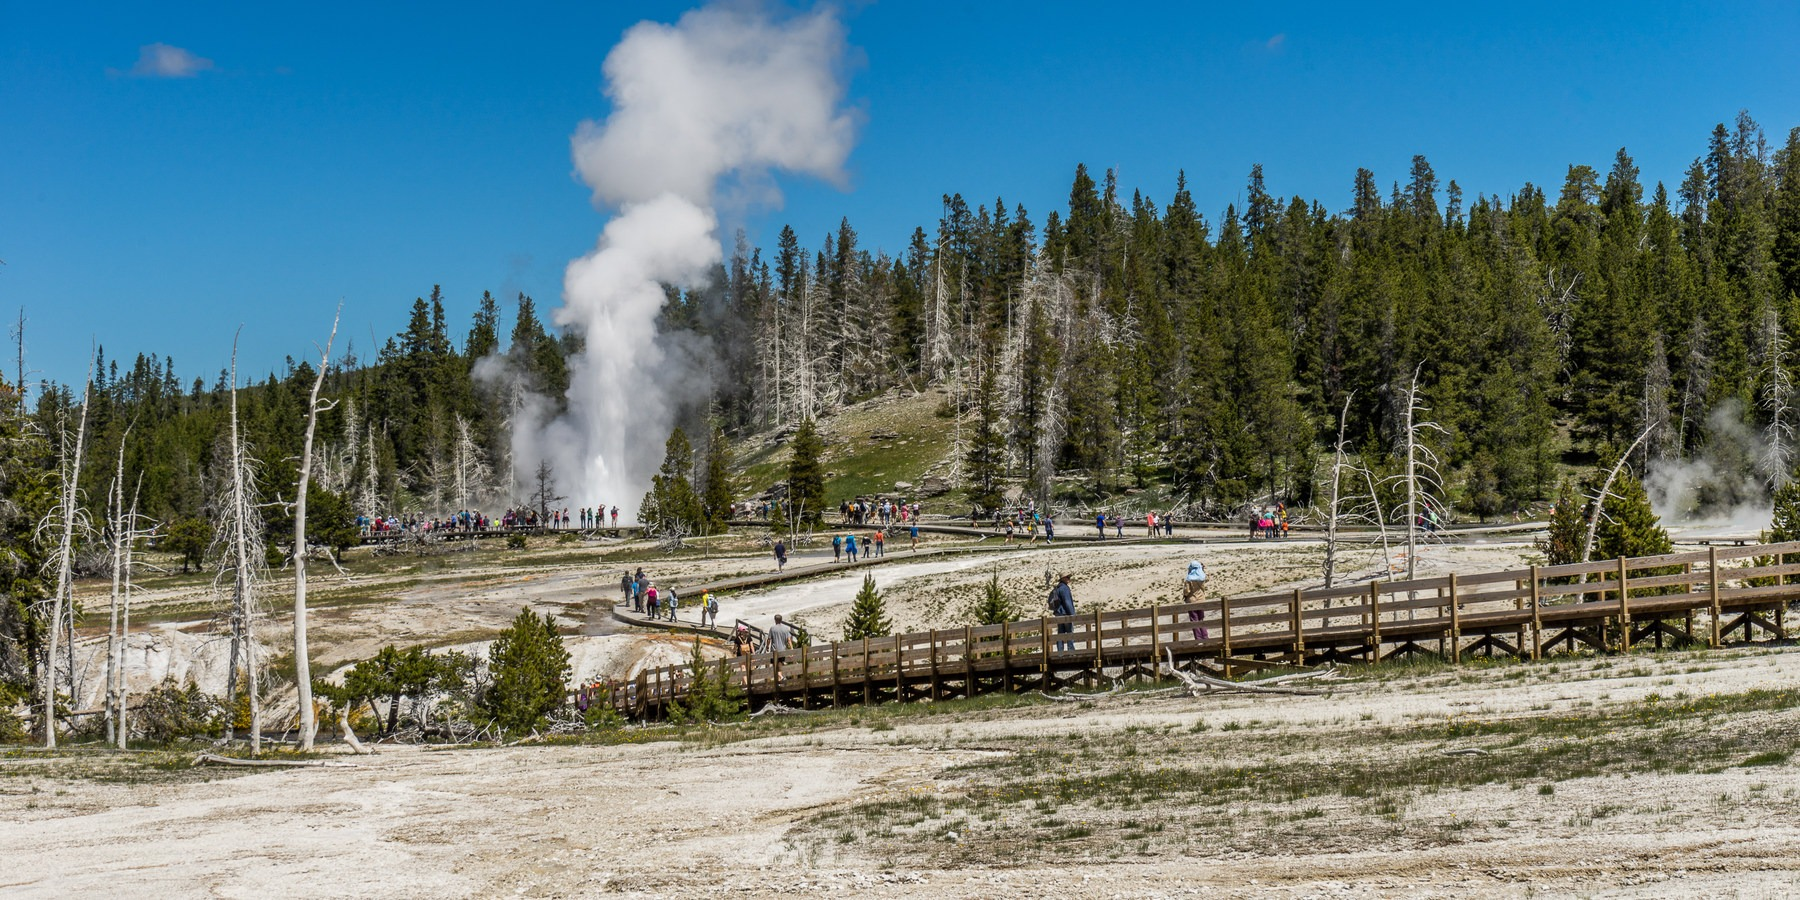 yellowstone national park chat sites The northwest corner of wyoming is boiling there, 10,000 hydrothermal features transform yellowstone national park into an alien world with searing waters and steaming vents—all fueled by a simmering supervolcano.